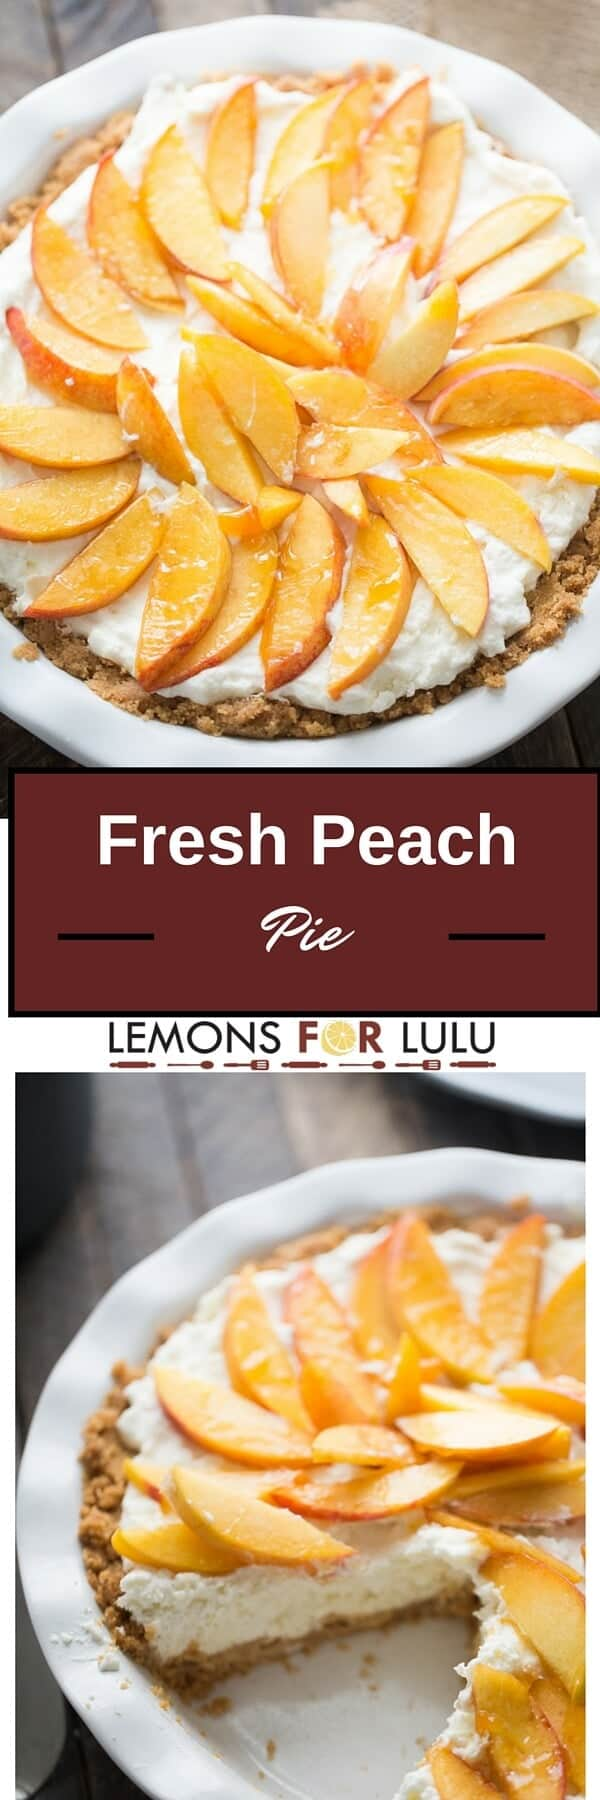 Fresh Peach Pie - LemonsforLulu.com